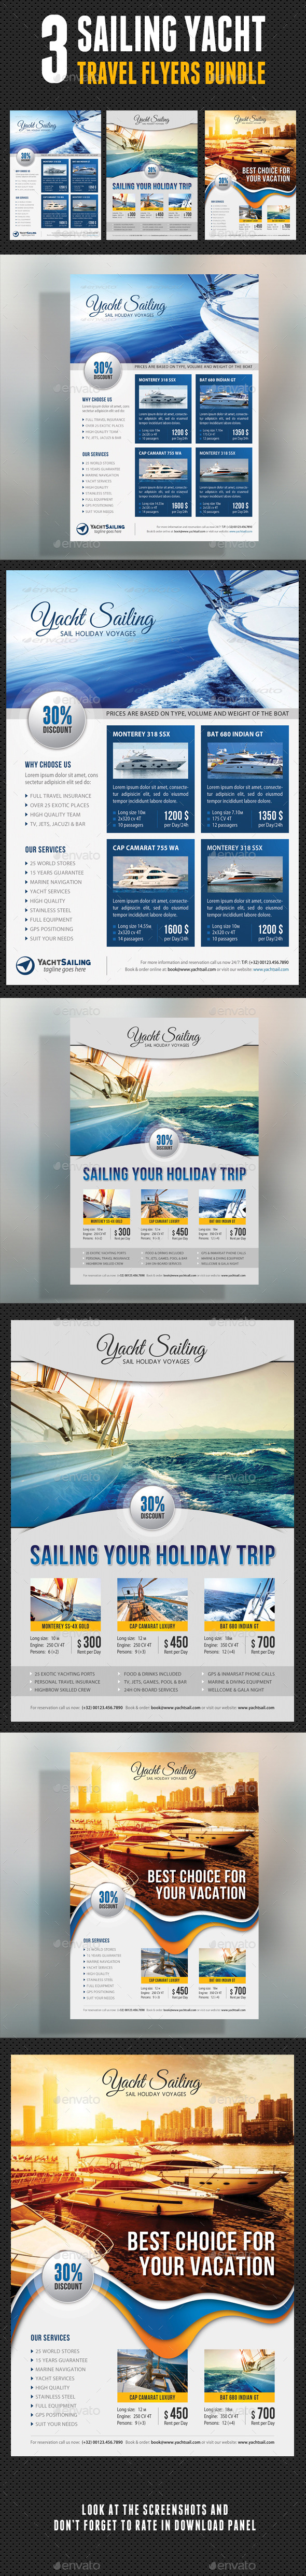 3 in 1 Sailing Yacht Travel Flyers Bundle V03